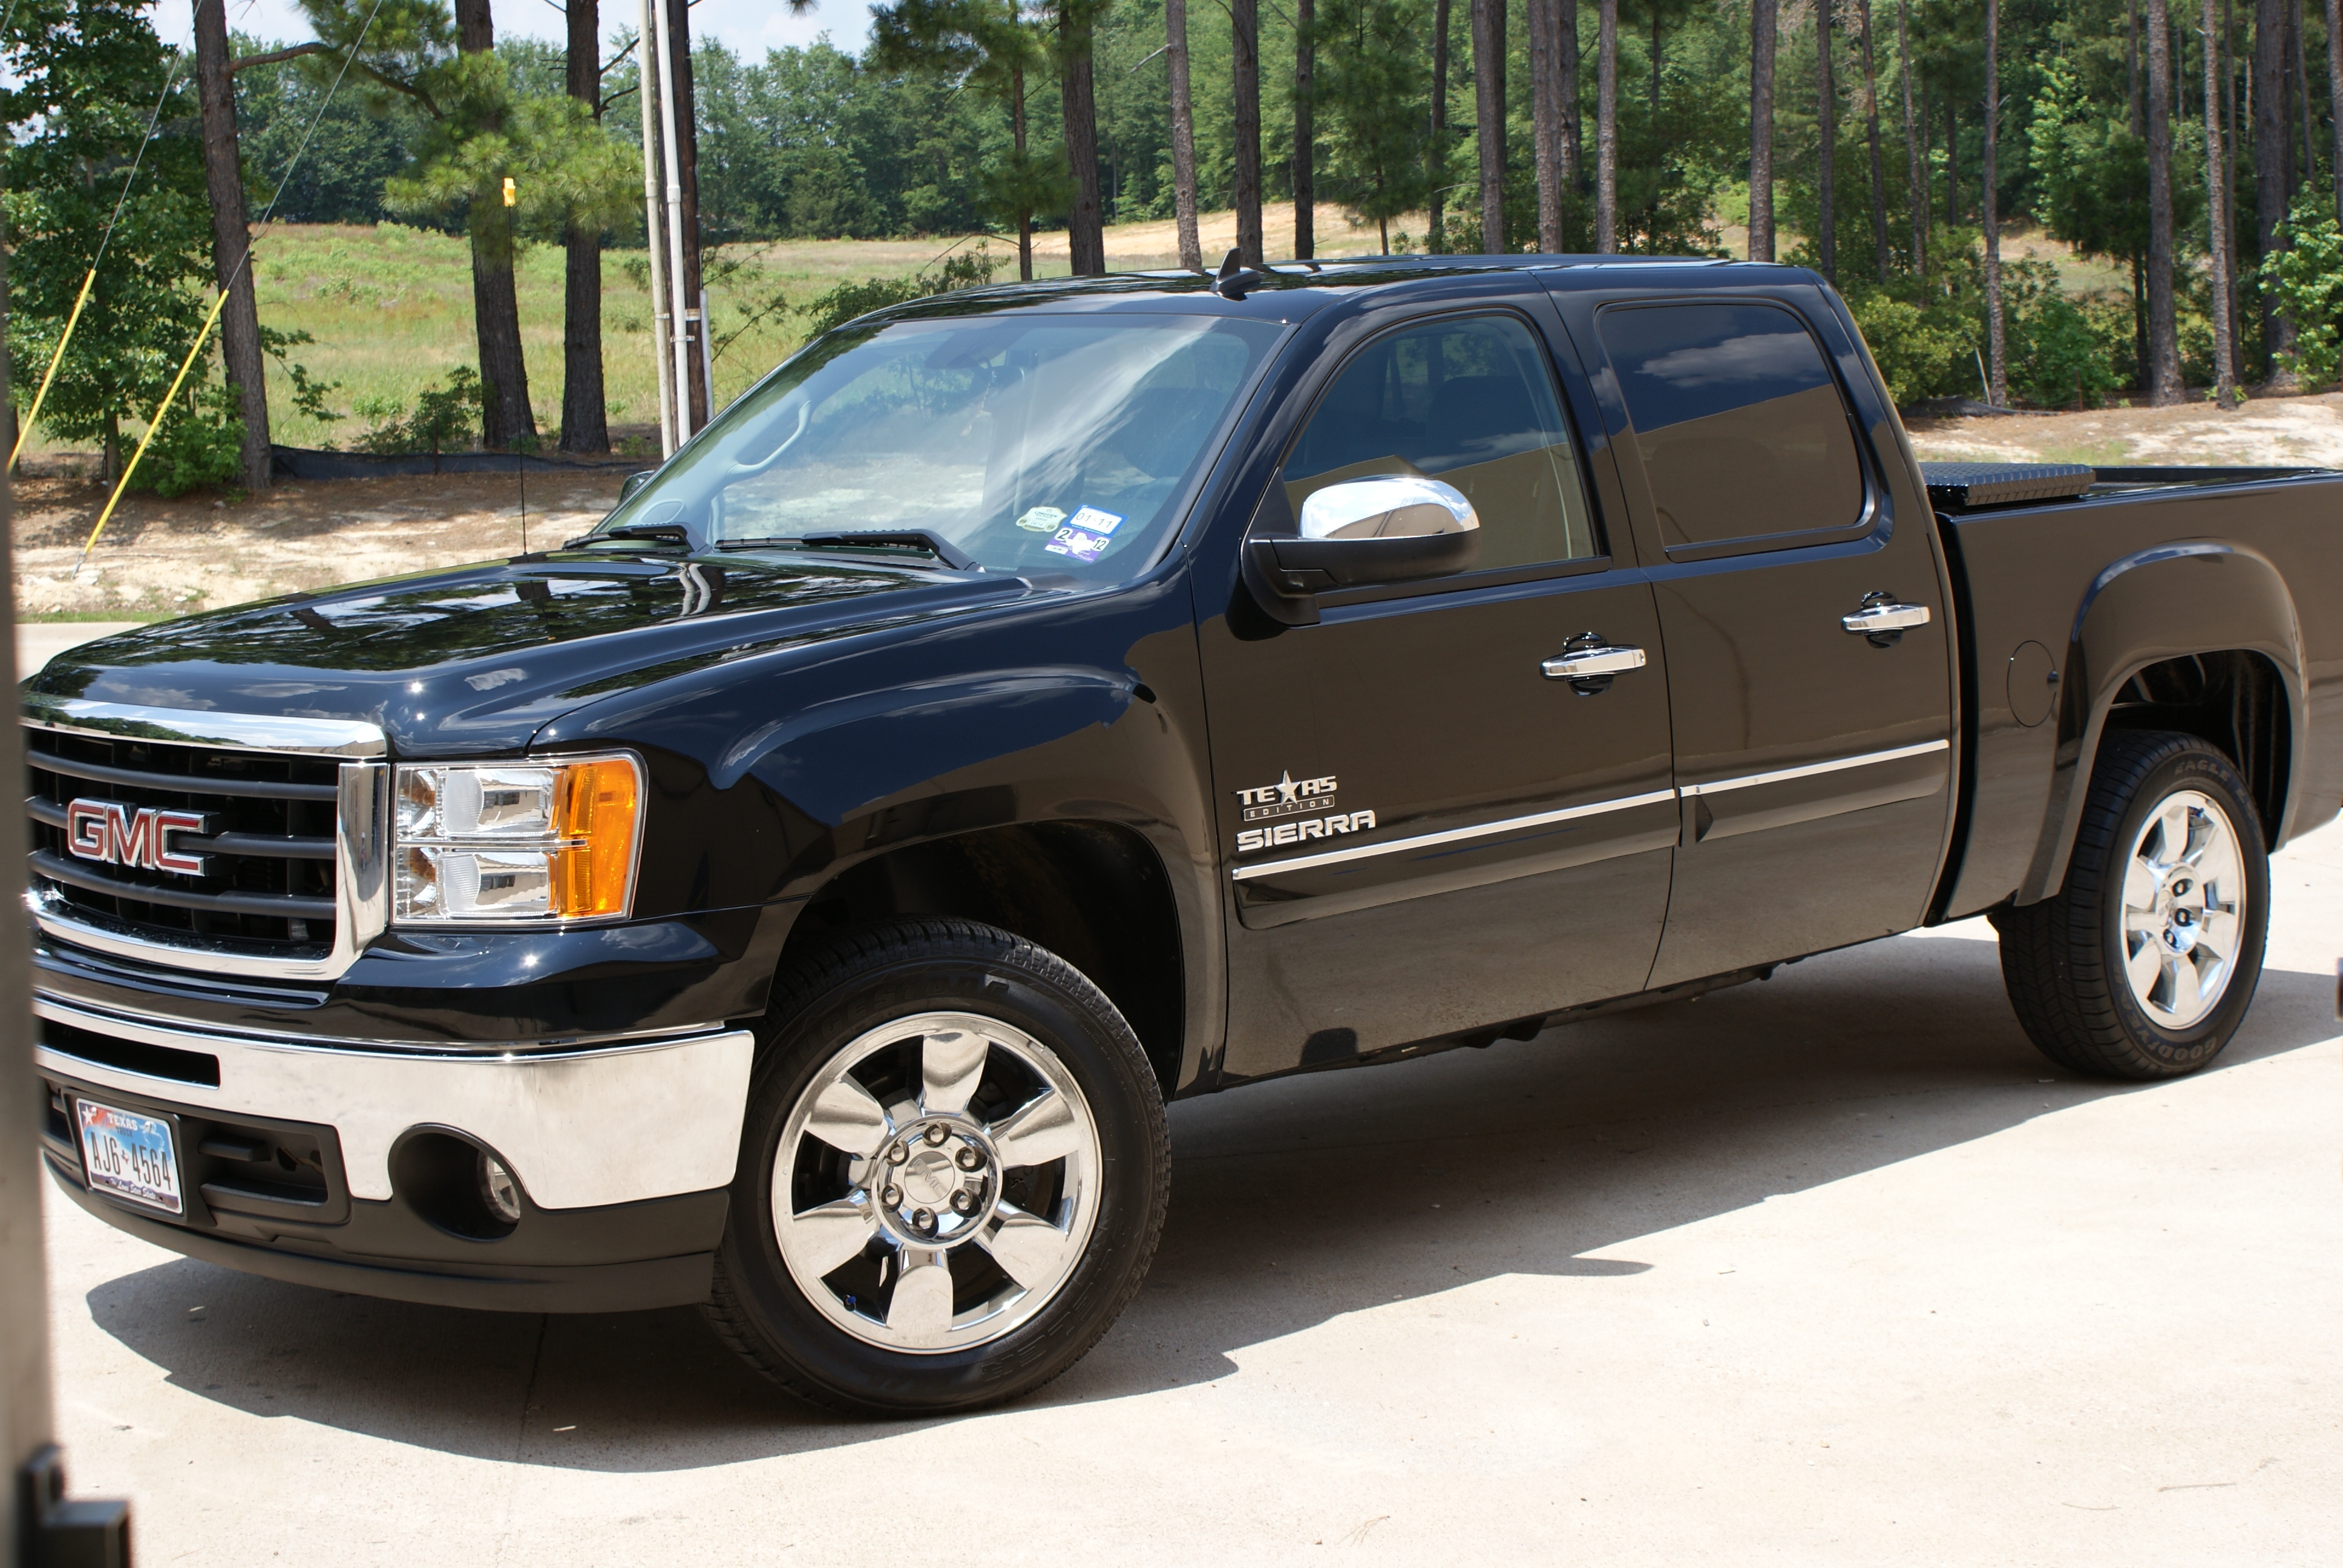 kevalexander 39 s 2010 gmc sierra 1500 crew cab sle in dallas tx. Black Bedroom Furniture Sets. Home Design Ideas